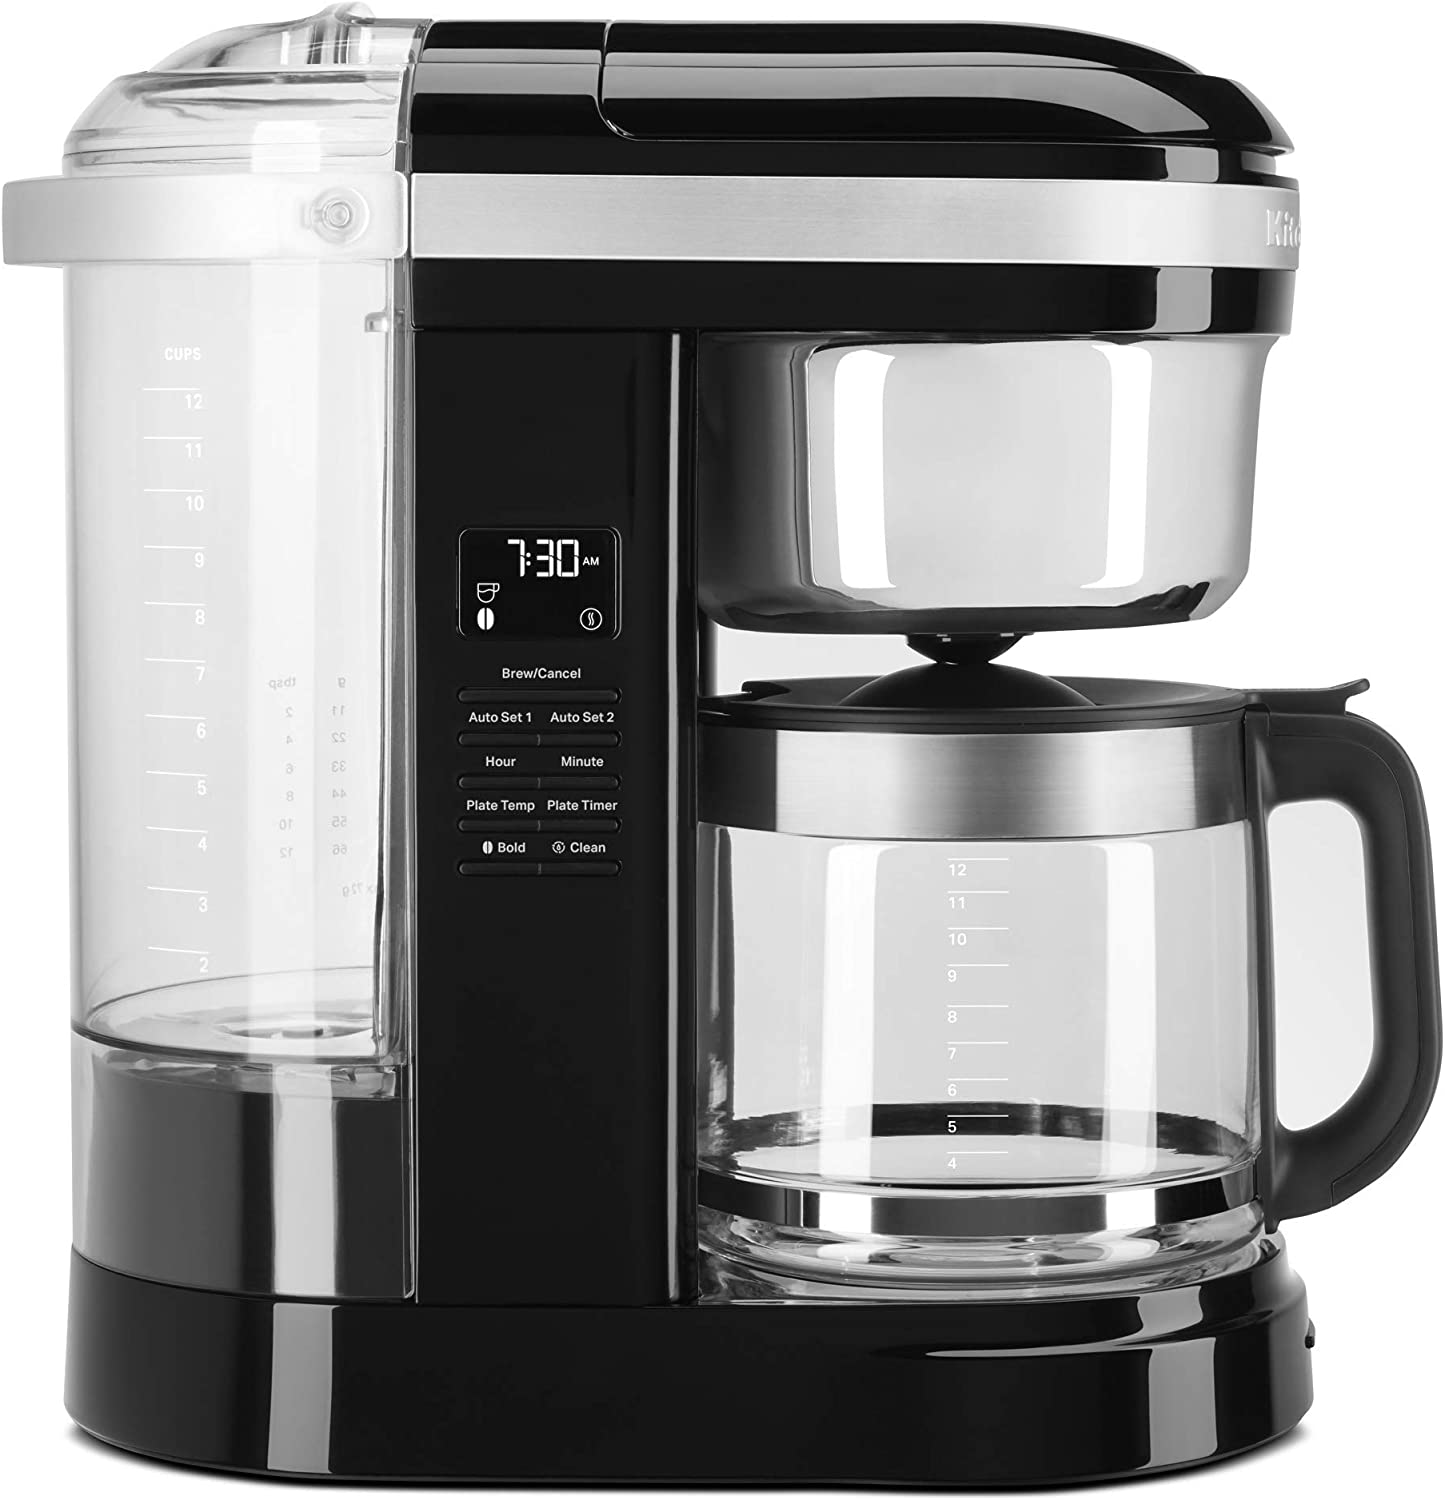 KitchenAid KCM1209OB Drip Coffee Maker, 12 Cup, Onyx Black